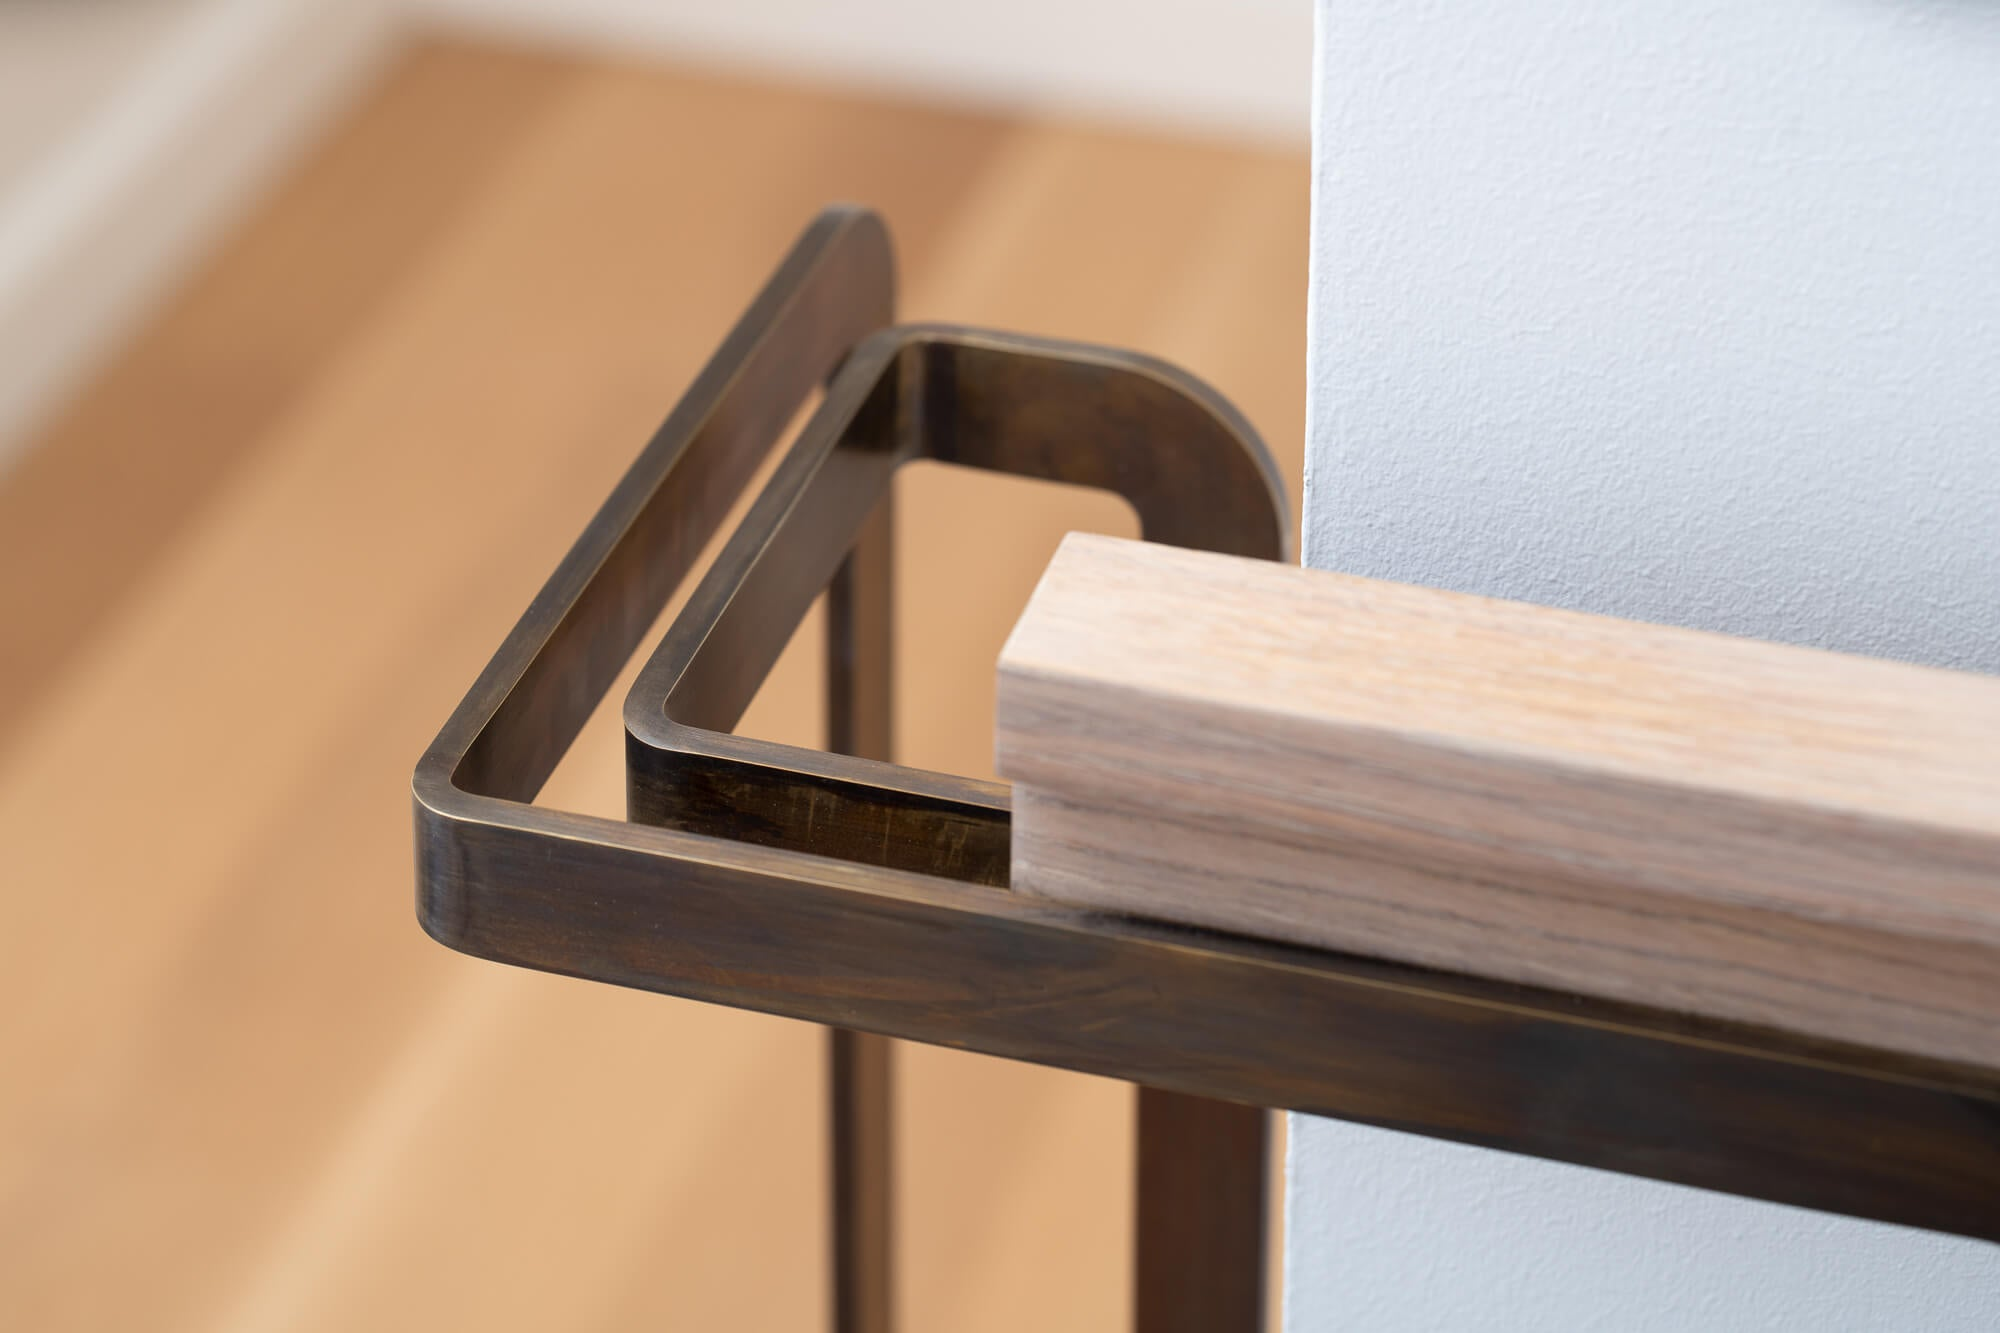 Detailed image of rift sawn white oak handrail for a staircase.